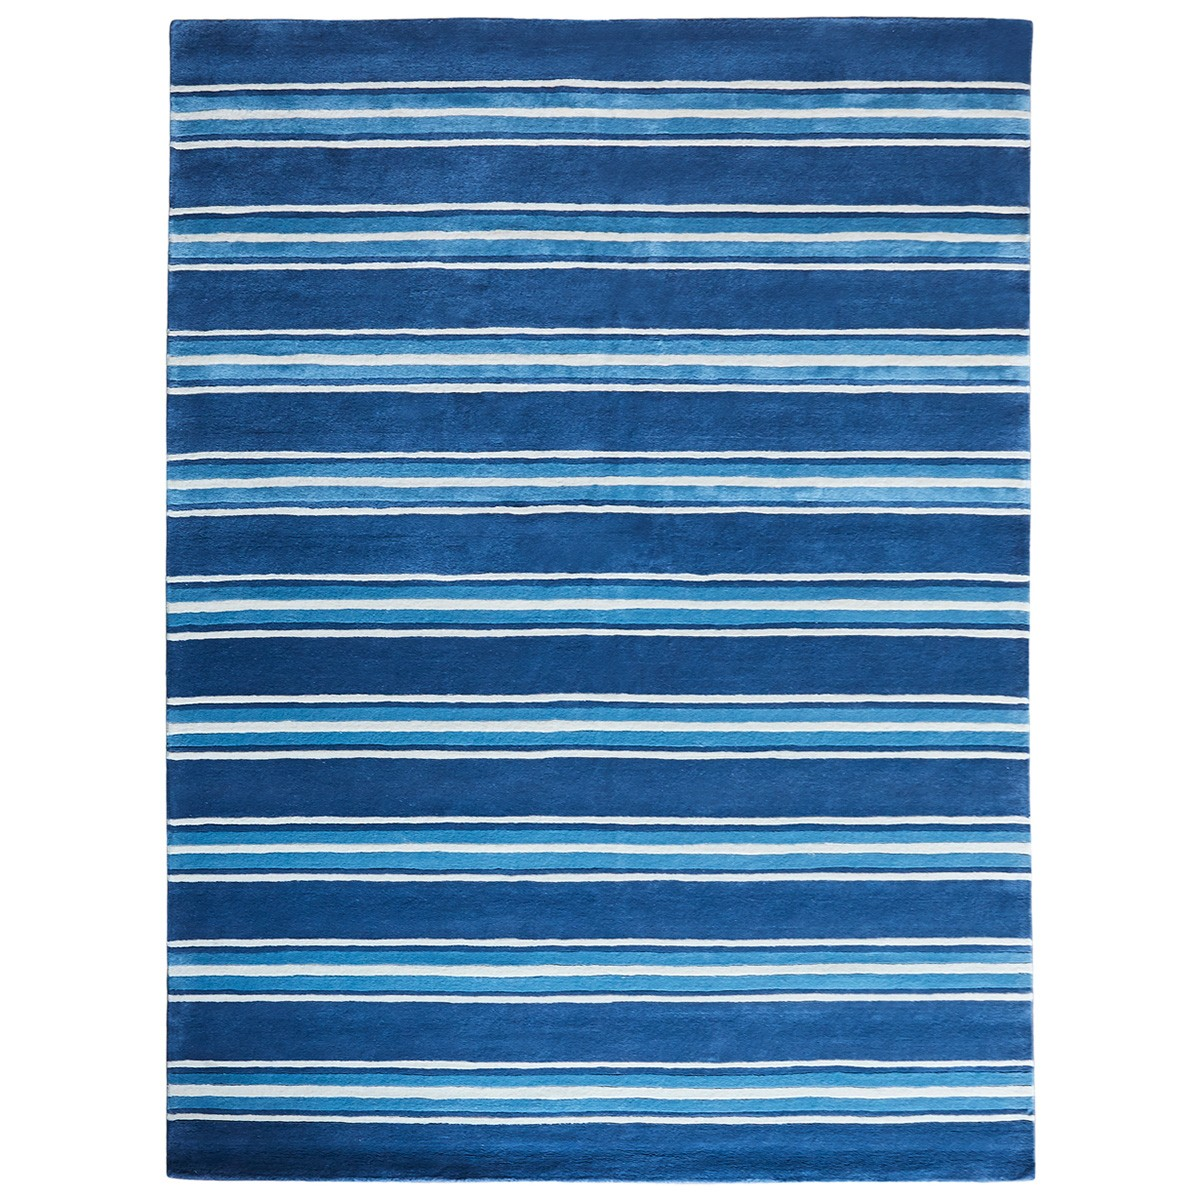 Seaview Hand Tufted Wool Rug, 240x320cm